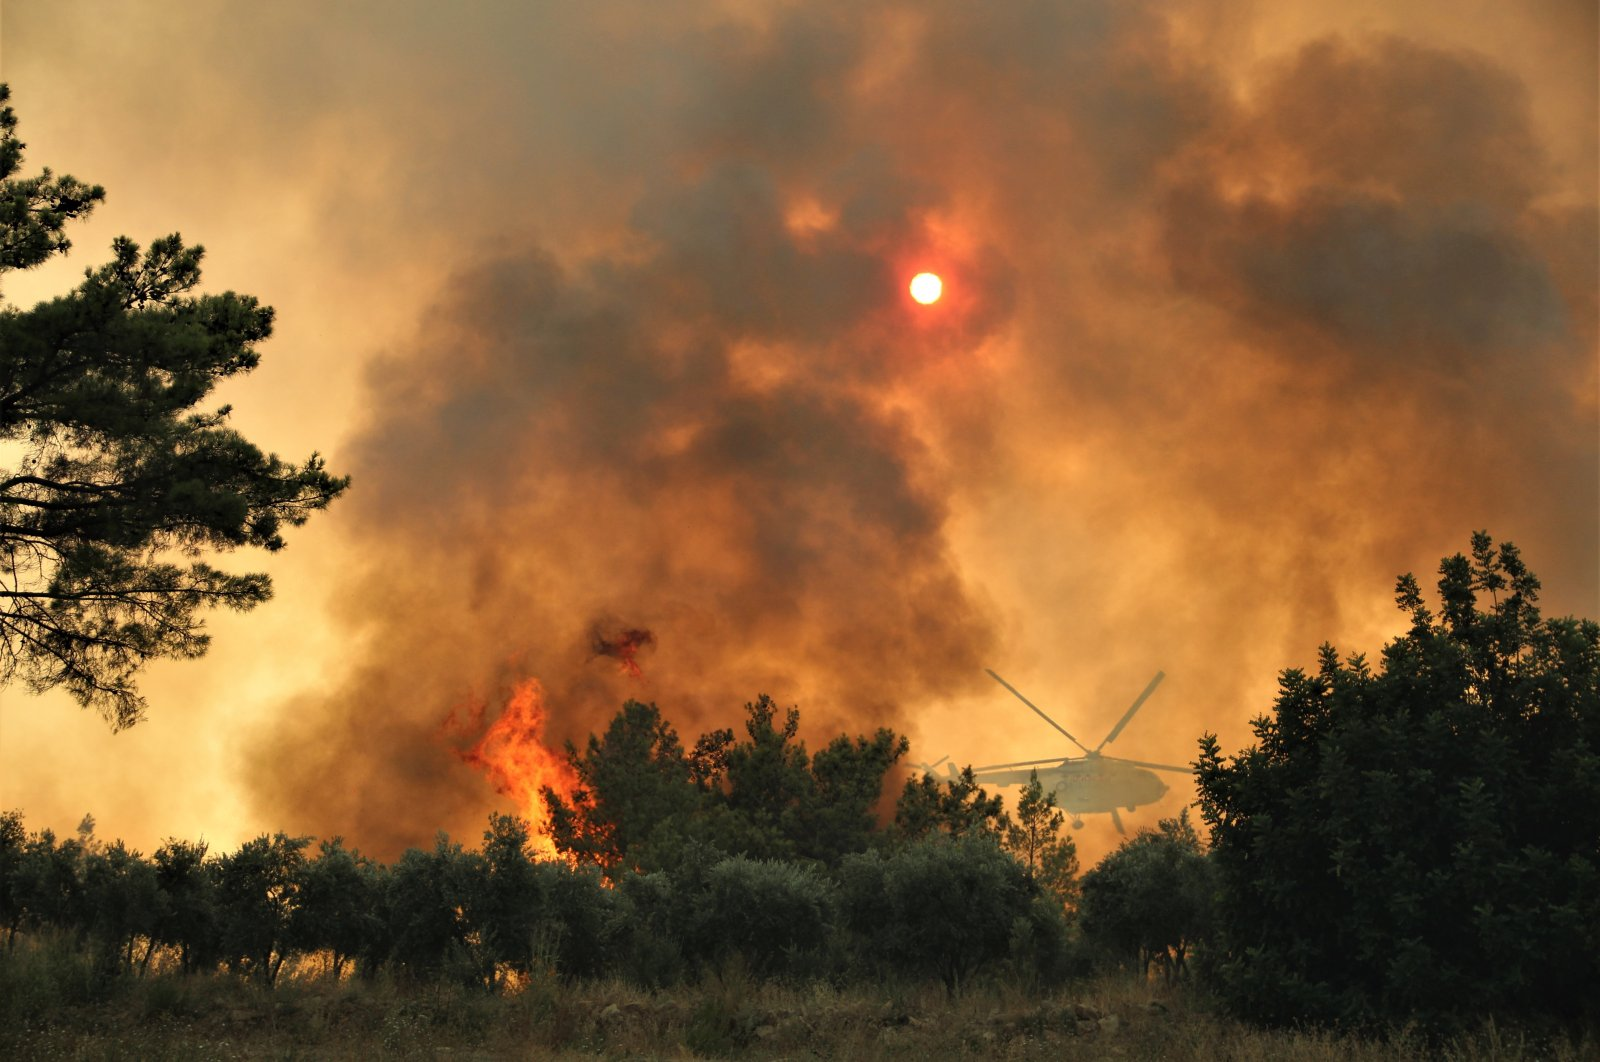 A firefighting helicopter flies above a forest fire, in Antalya, southern Turkey, Aug. 5, 2021. (İHA PHOTO)